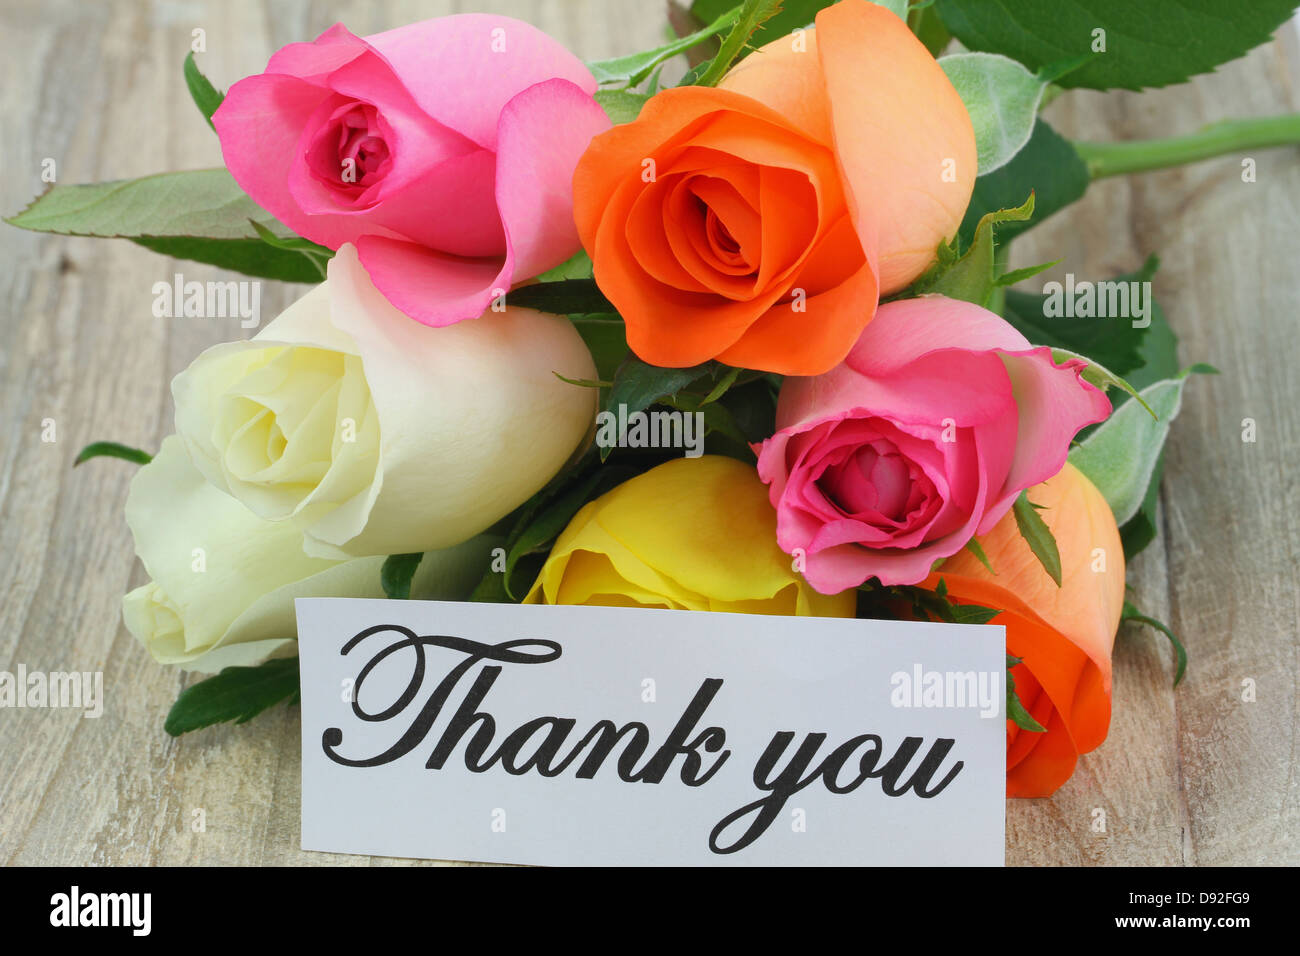 Image result for thank you bouquet